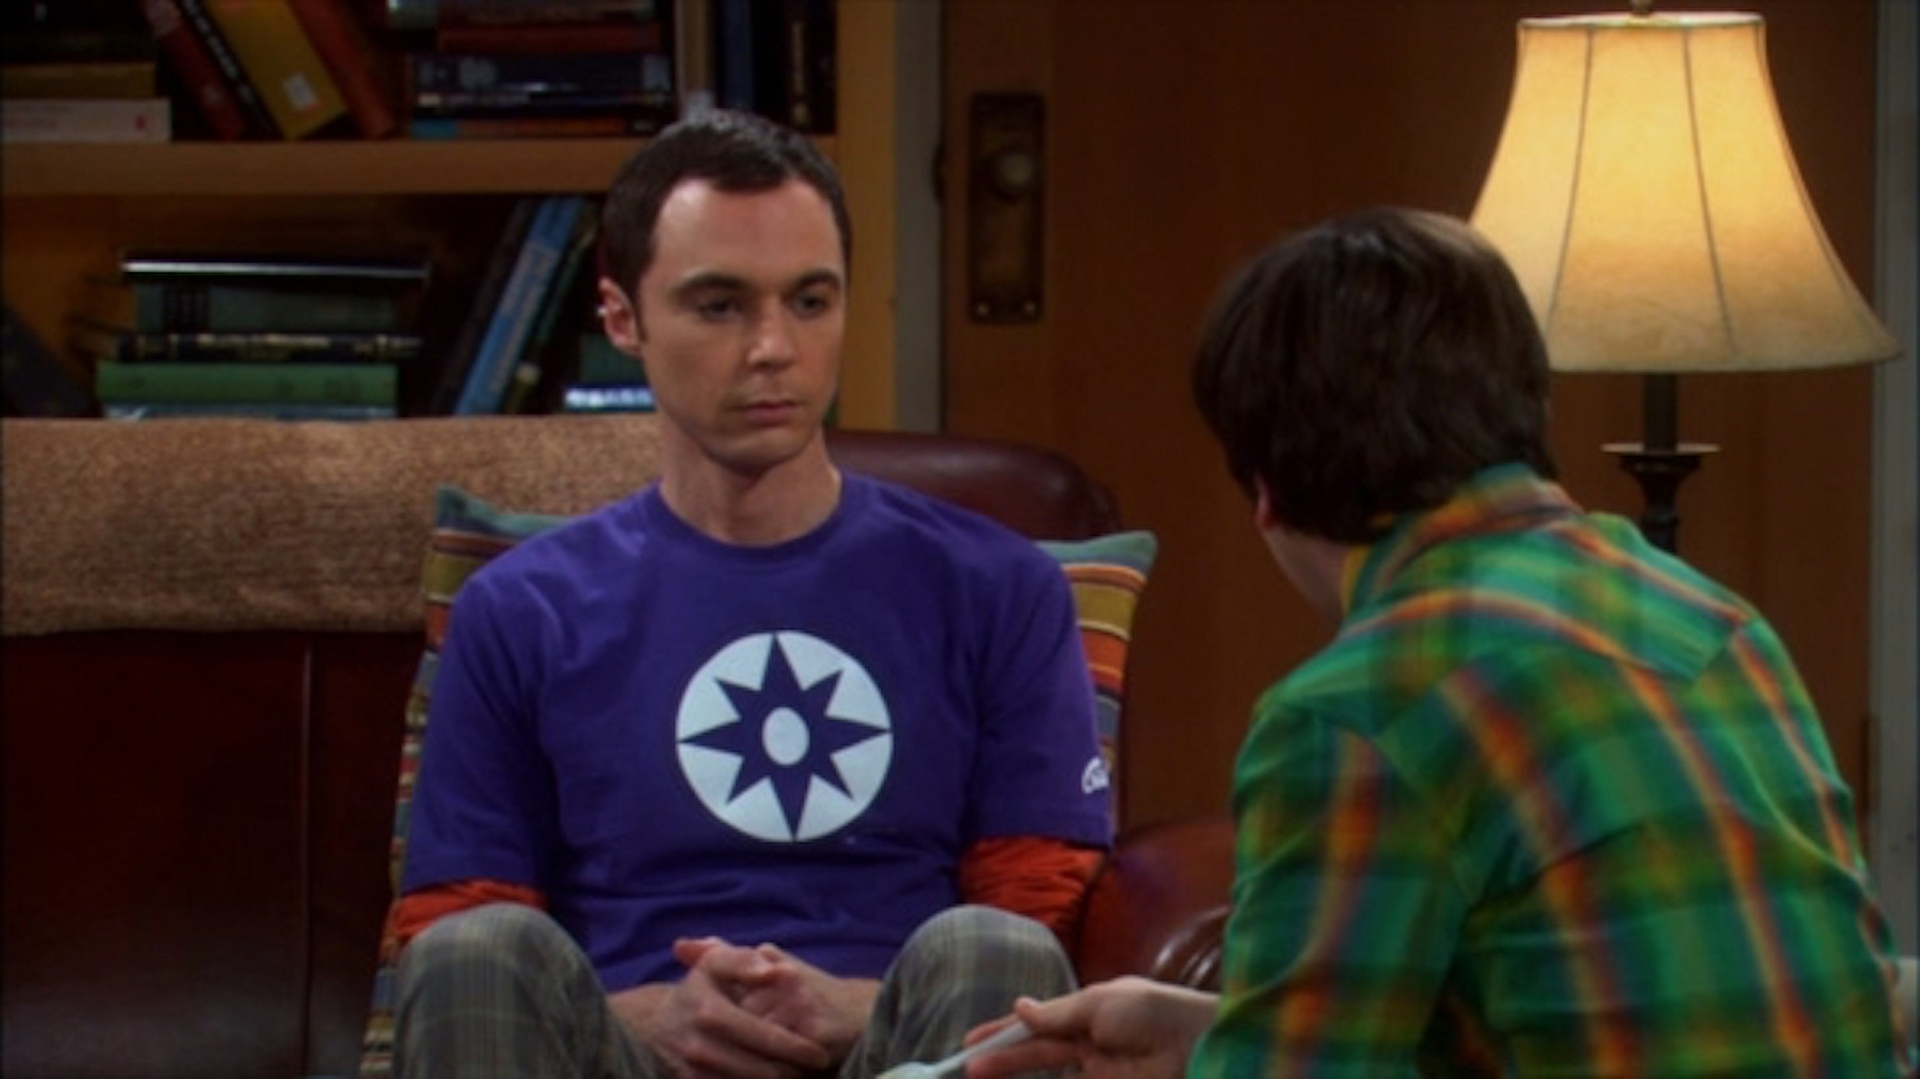 Sheldon Cooper's Star Sapphire symbol shirt from The Big Bang Theory